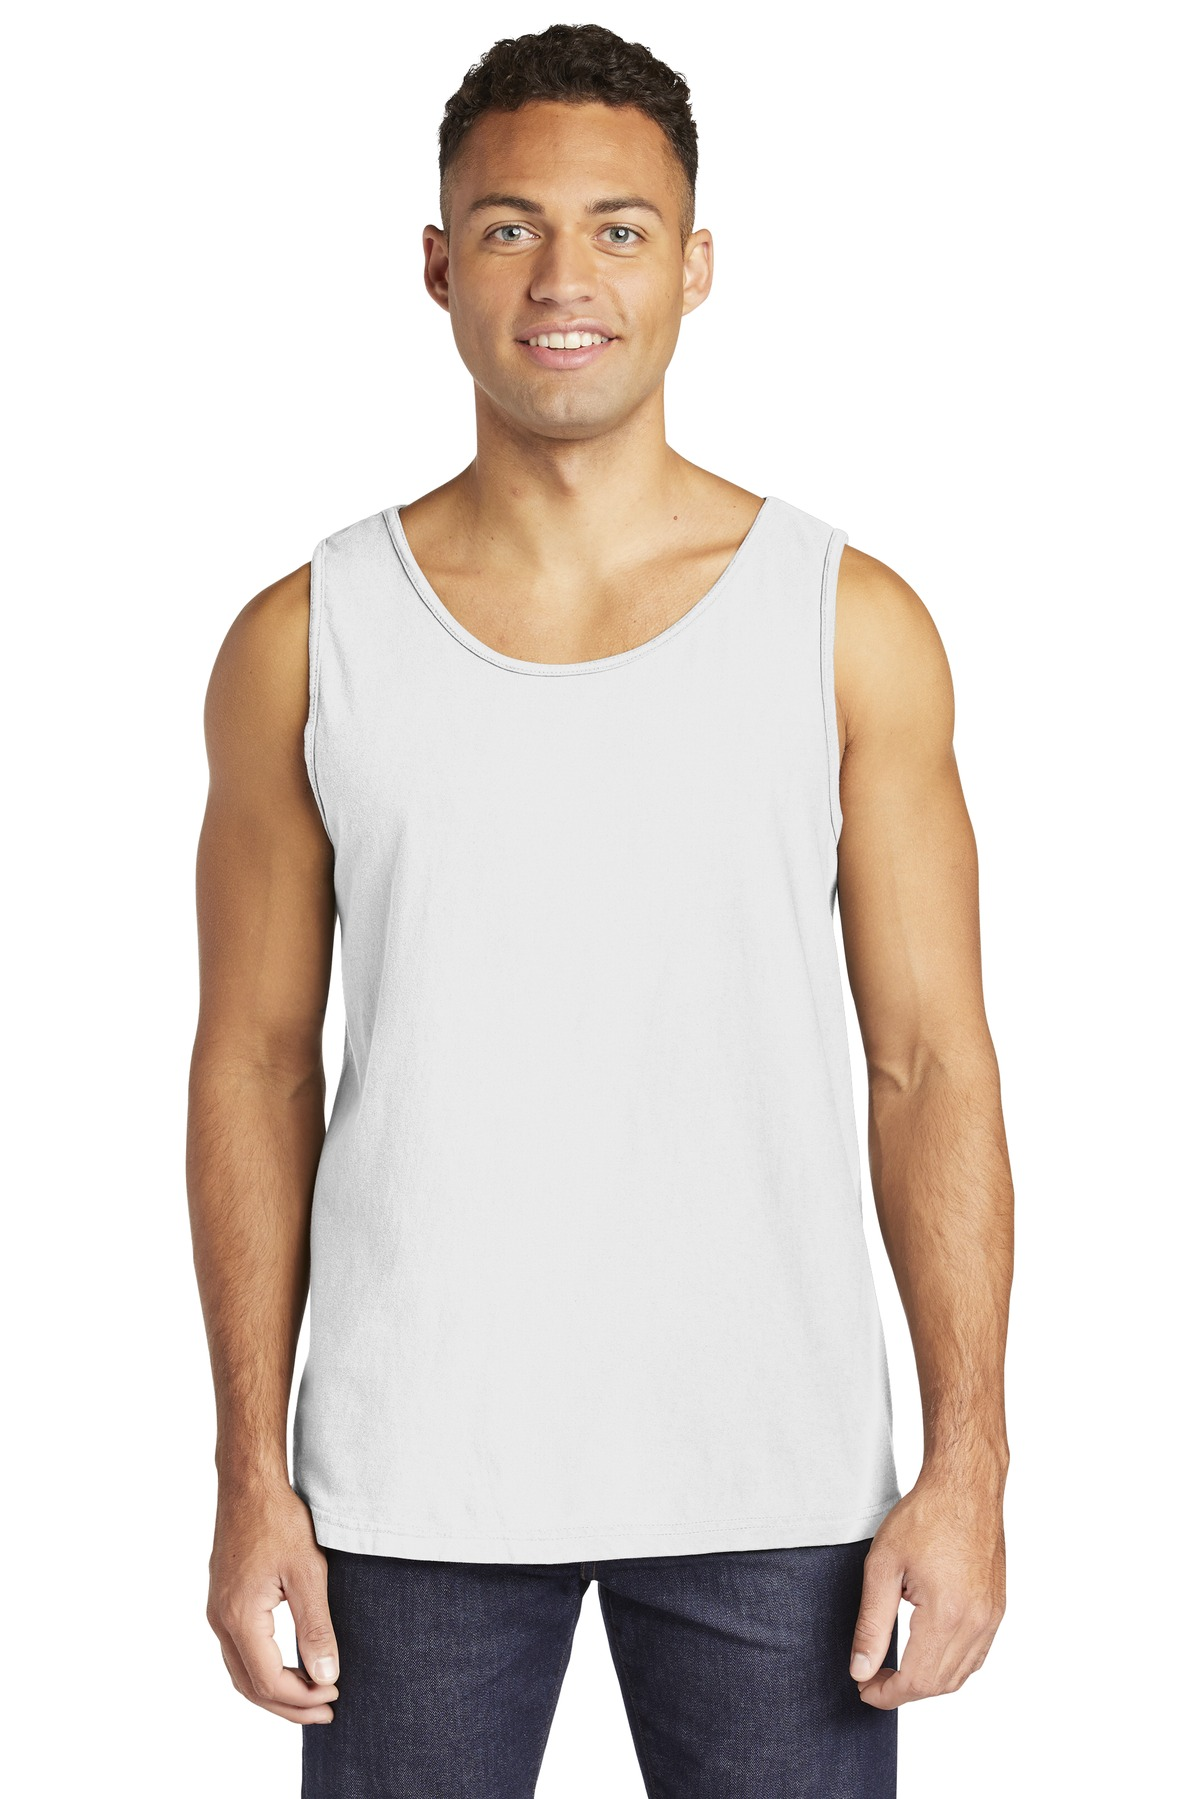 COMFORT COLORS  ®  Heavyweight Ring Spun Tank Top. 9360 - White